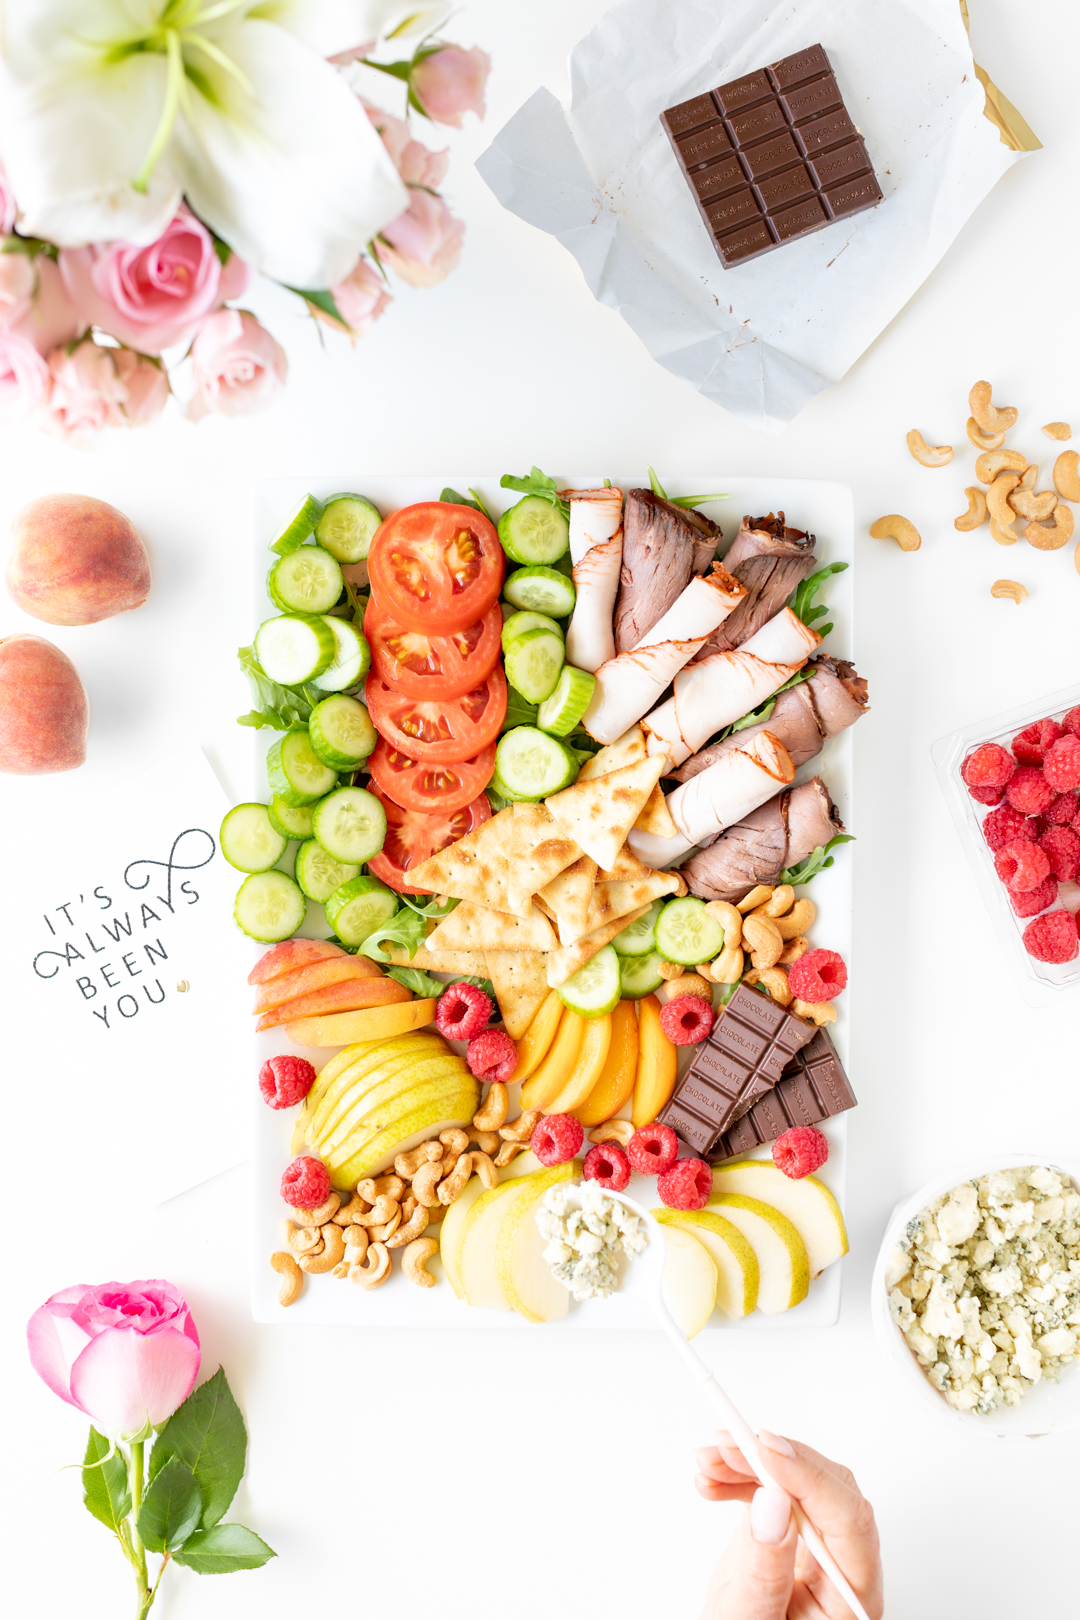 date night snack tray with meats, veggies and dessert